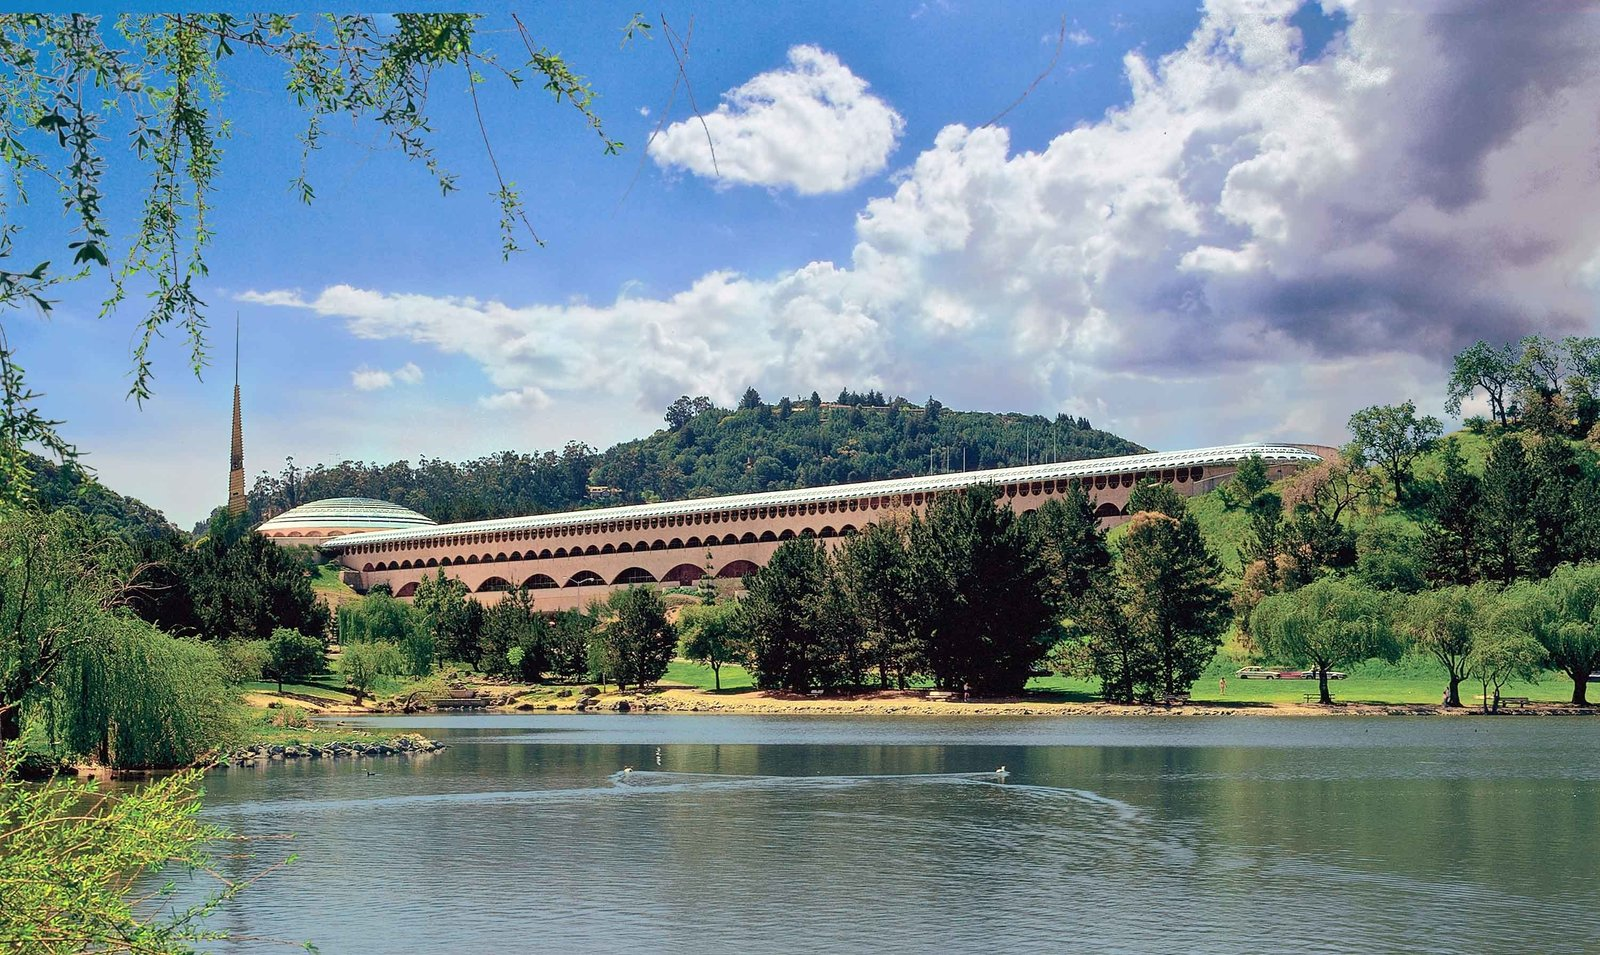 Marin County Civic Center (1957, San Rafael, California). Wright's design for the Marin County Civic Center blends into the surrounding hills, and even bridges over two with a series of arches.  Iconic Frank Lloyd Wright Buildings by Allie Weiss